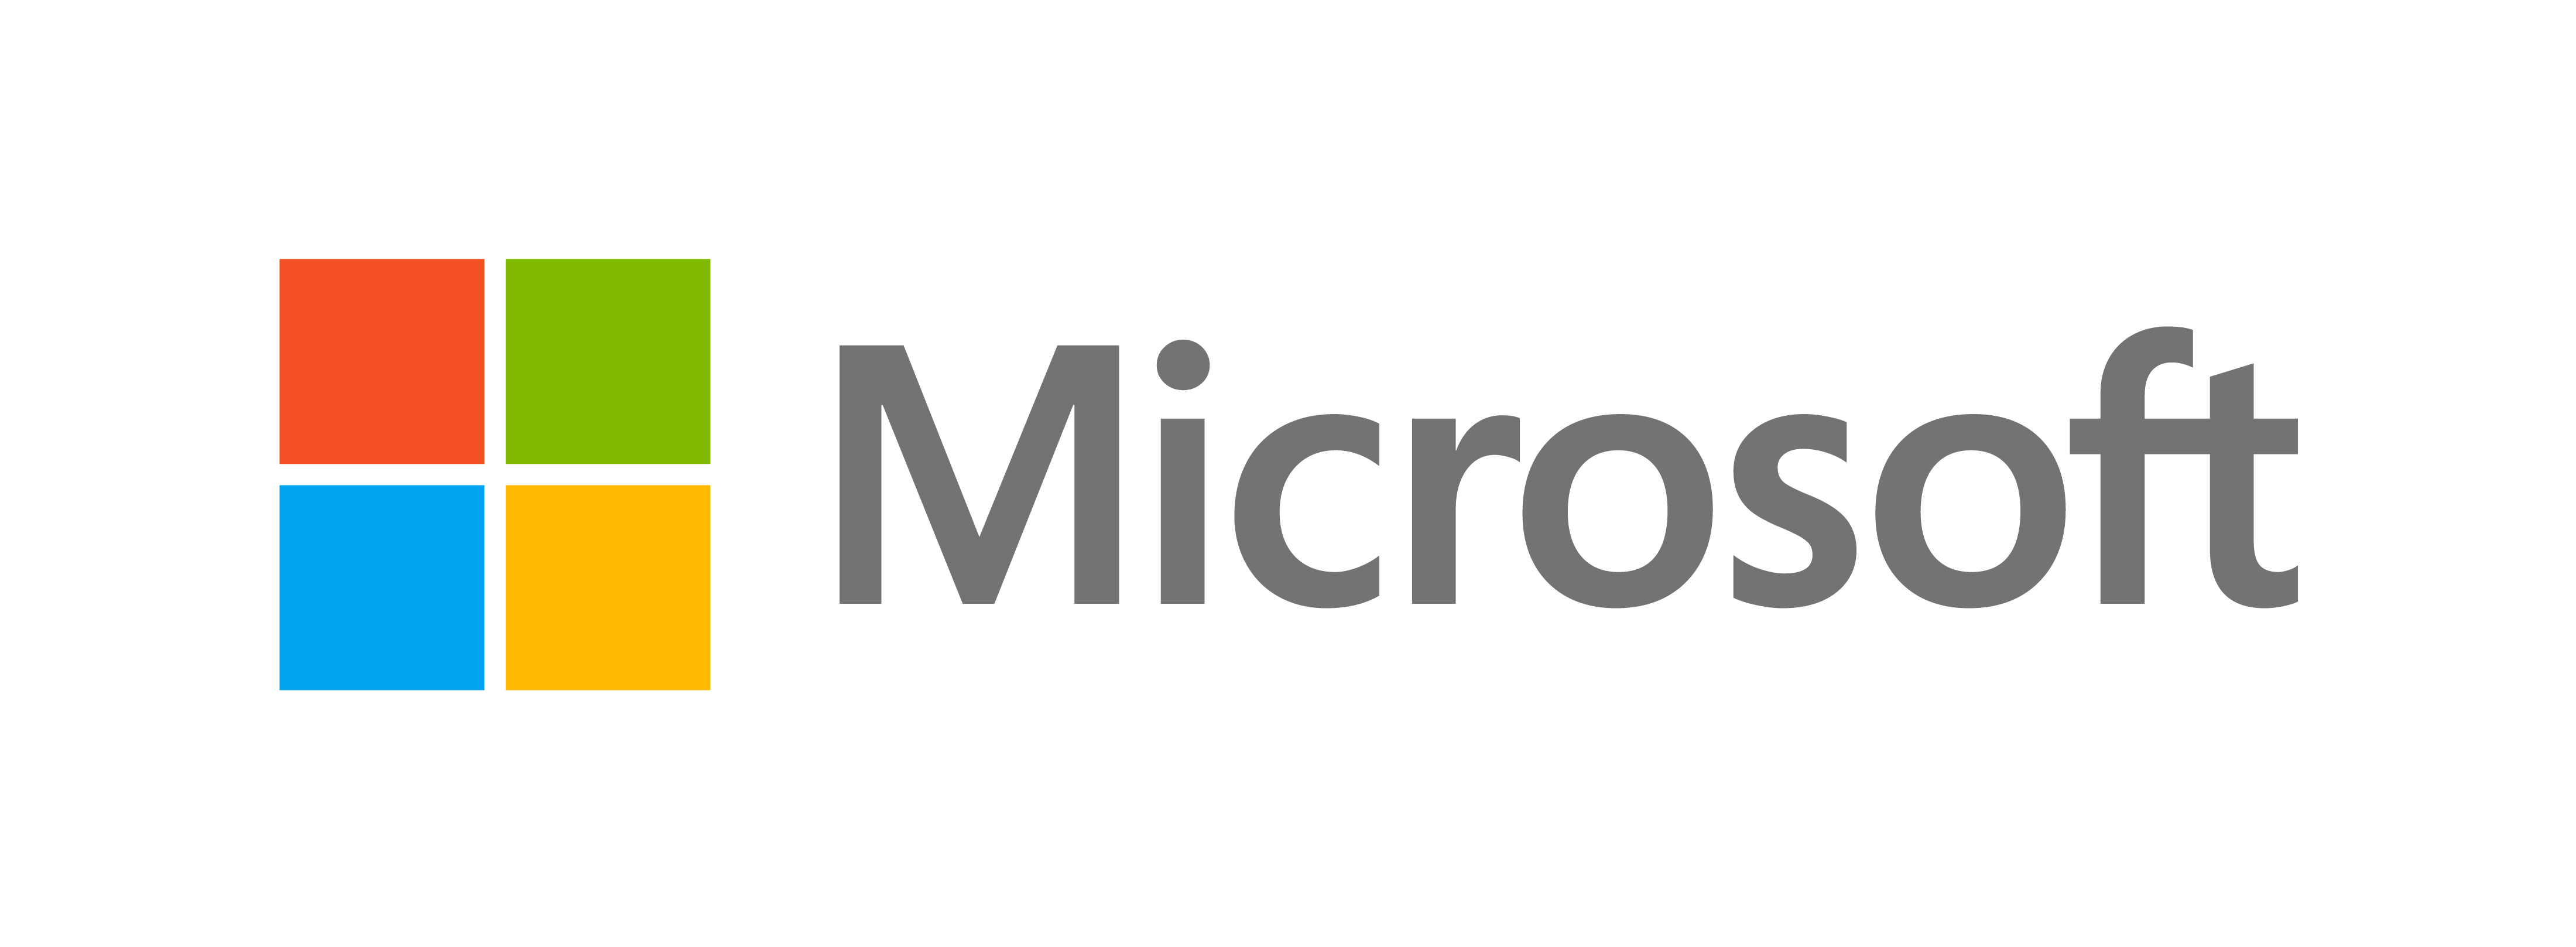 8867.Microsoft 5F00 Logo 2D00 for 2D00 screen